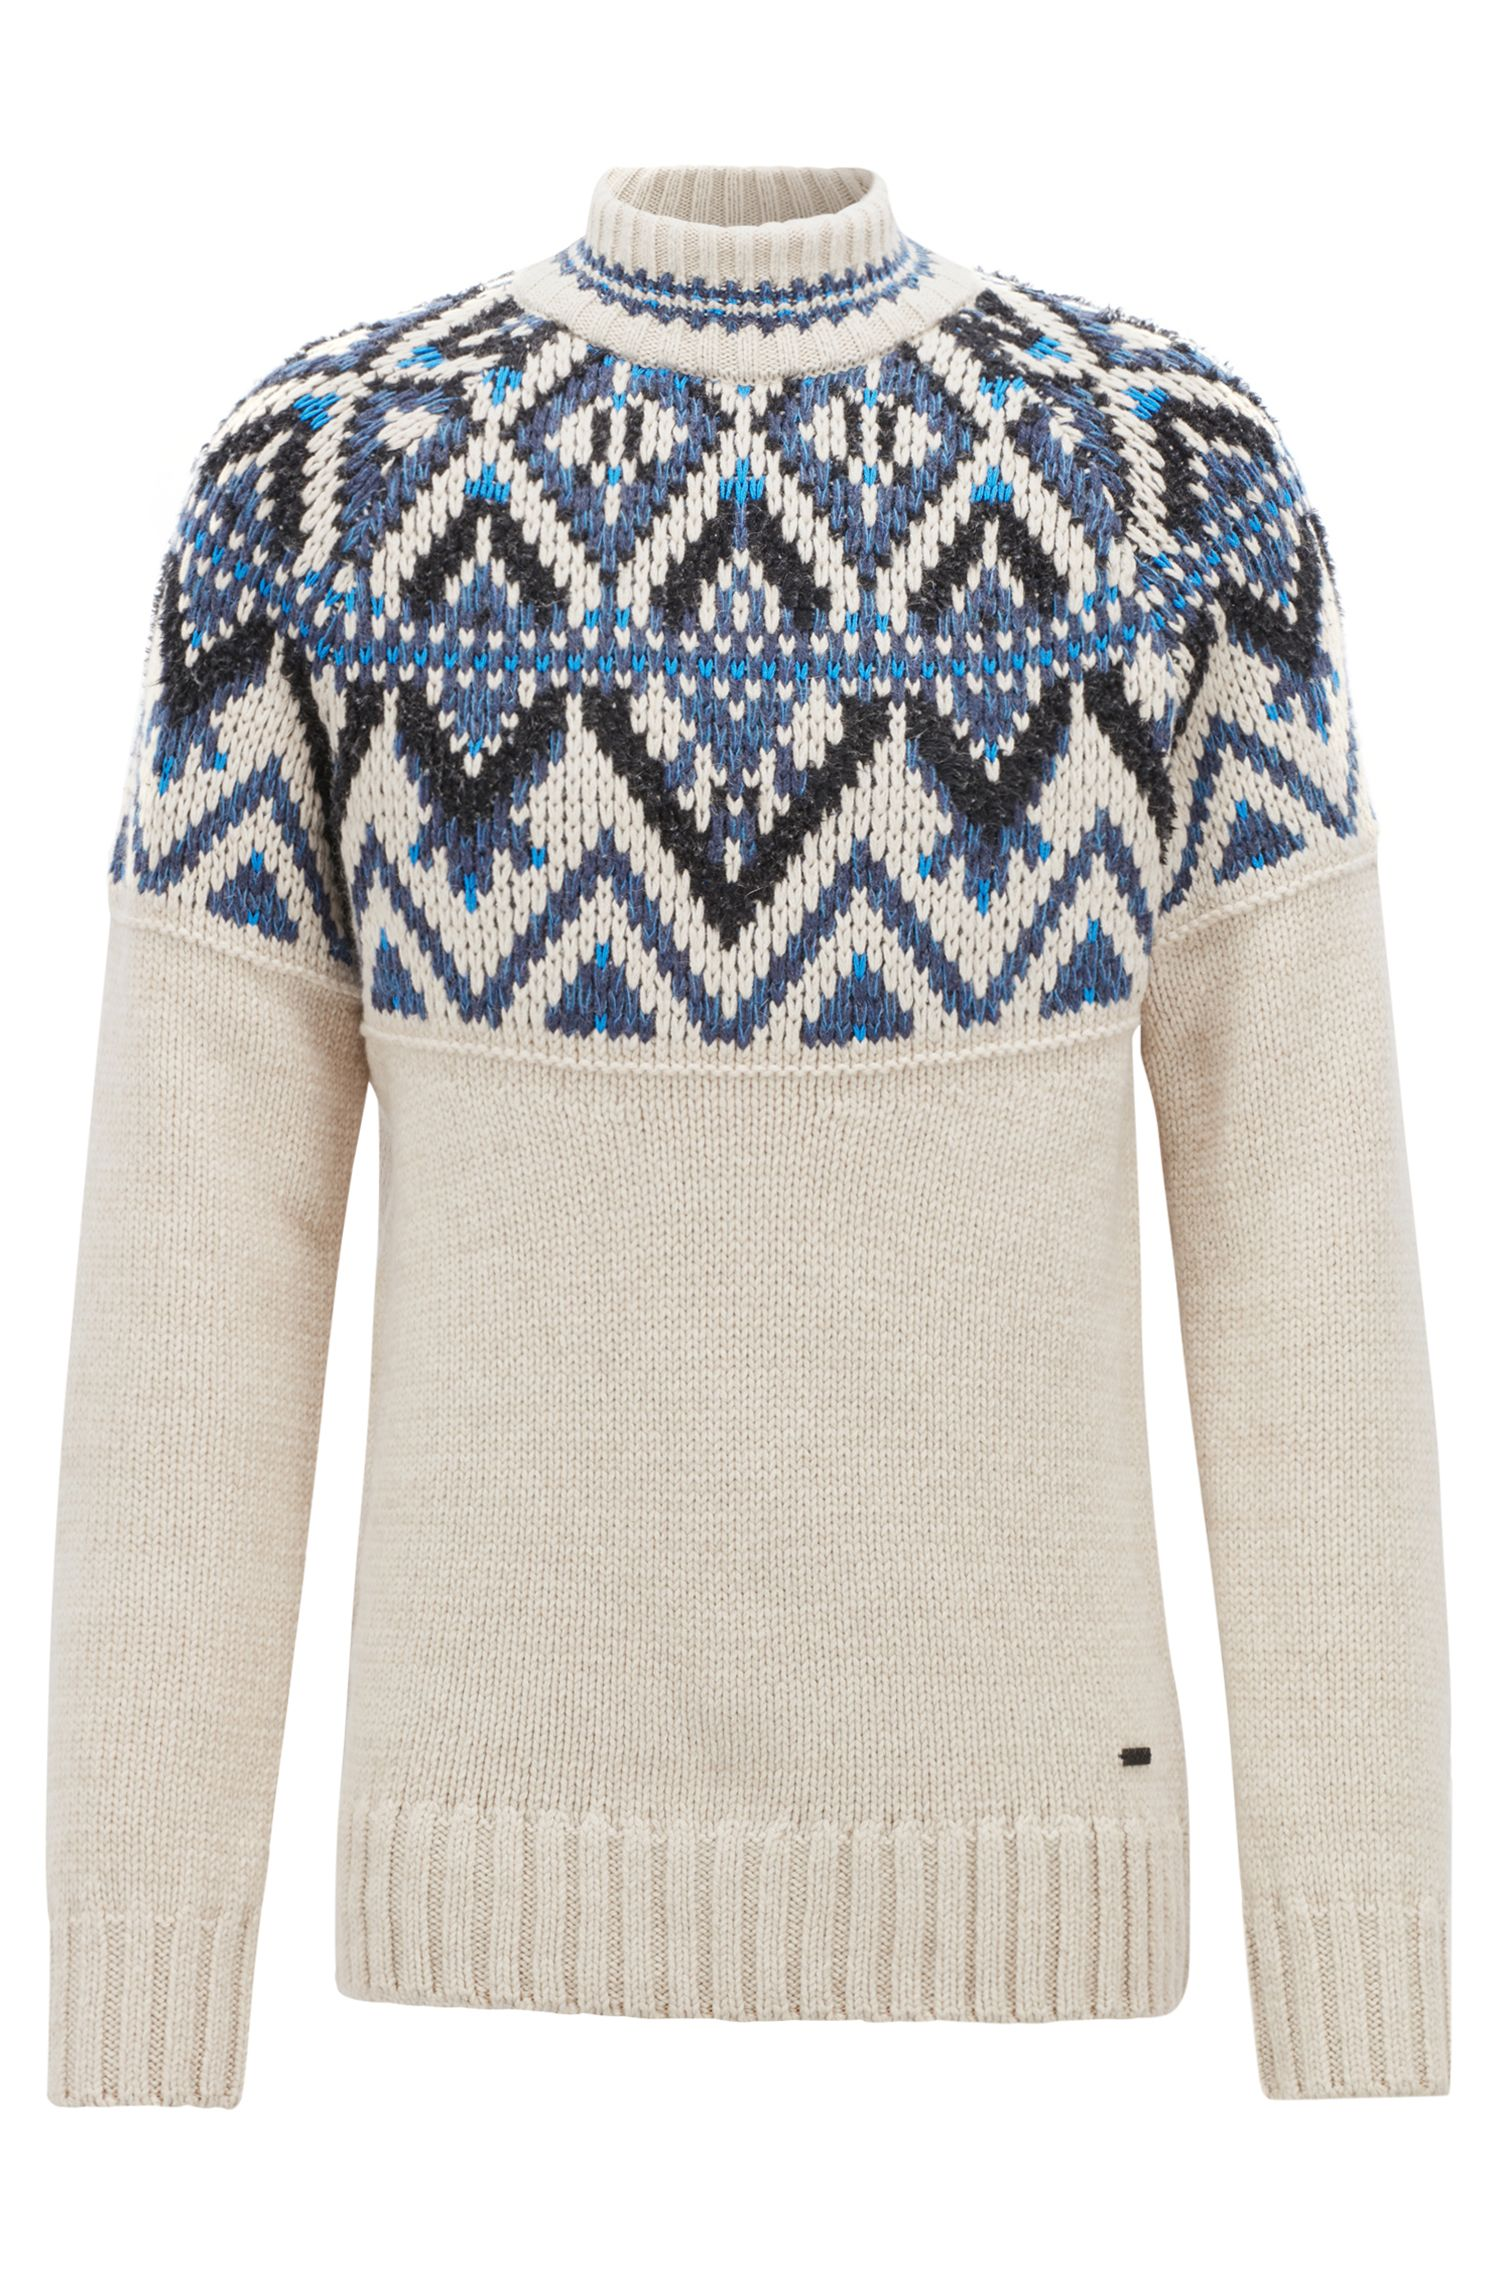 Fair Isle sweater in textured bouclé yarn, Open Beige